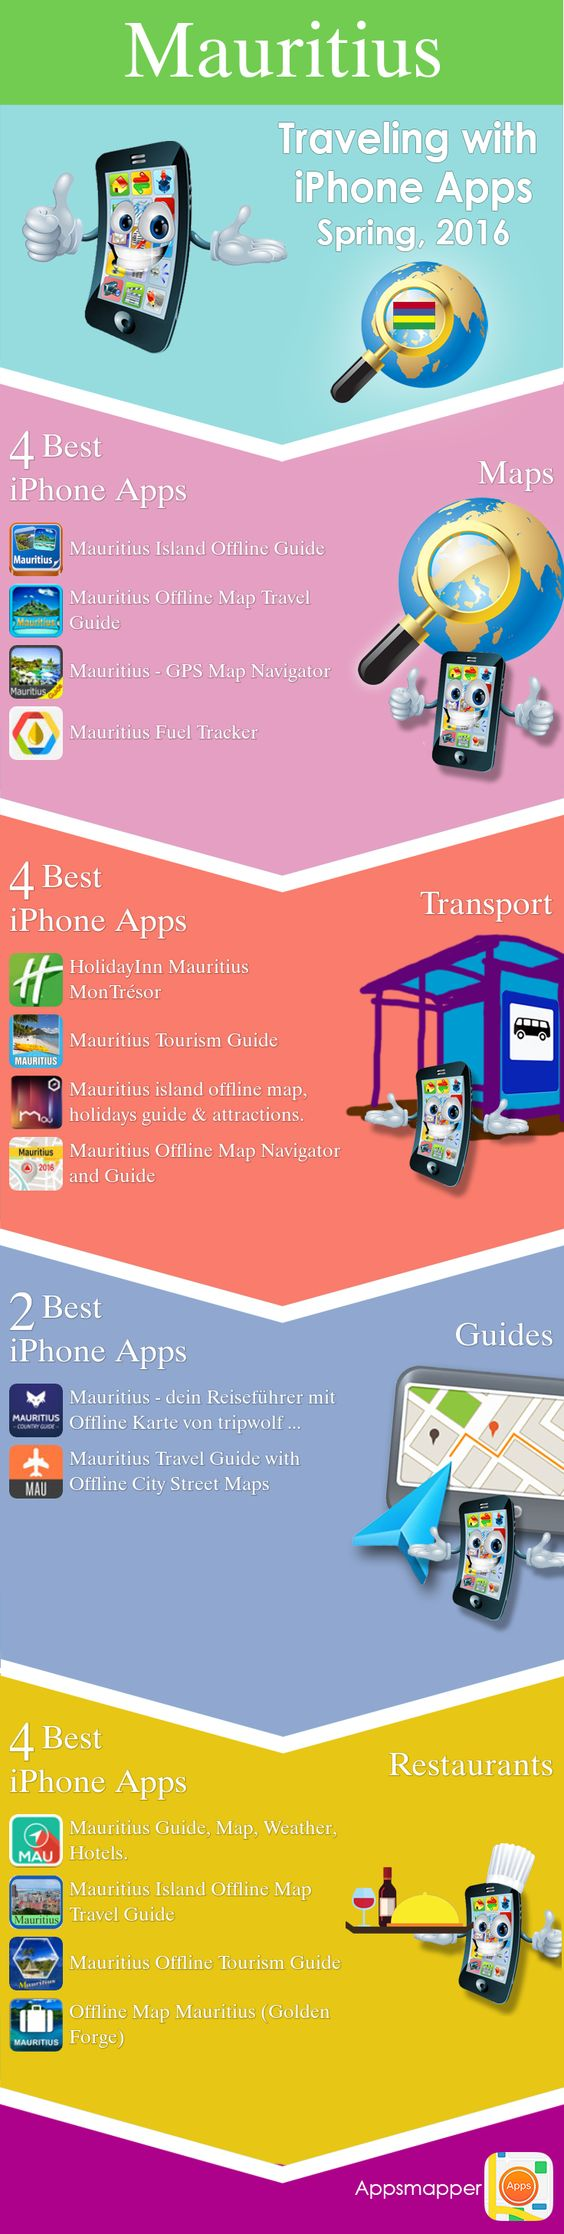 Mauritius iPhone apps: Travel Guides, Maps, Transportation, Biking, Museums, Parking, Sport and apps for Students.